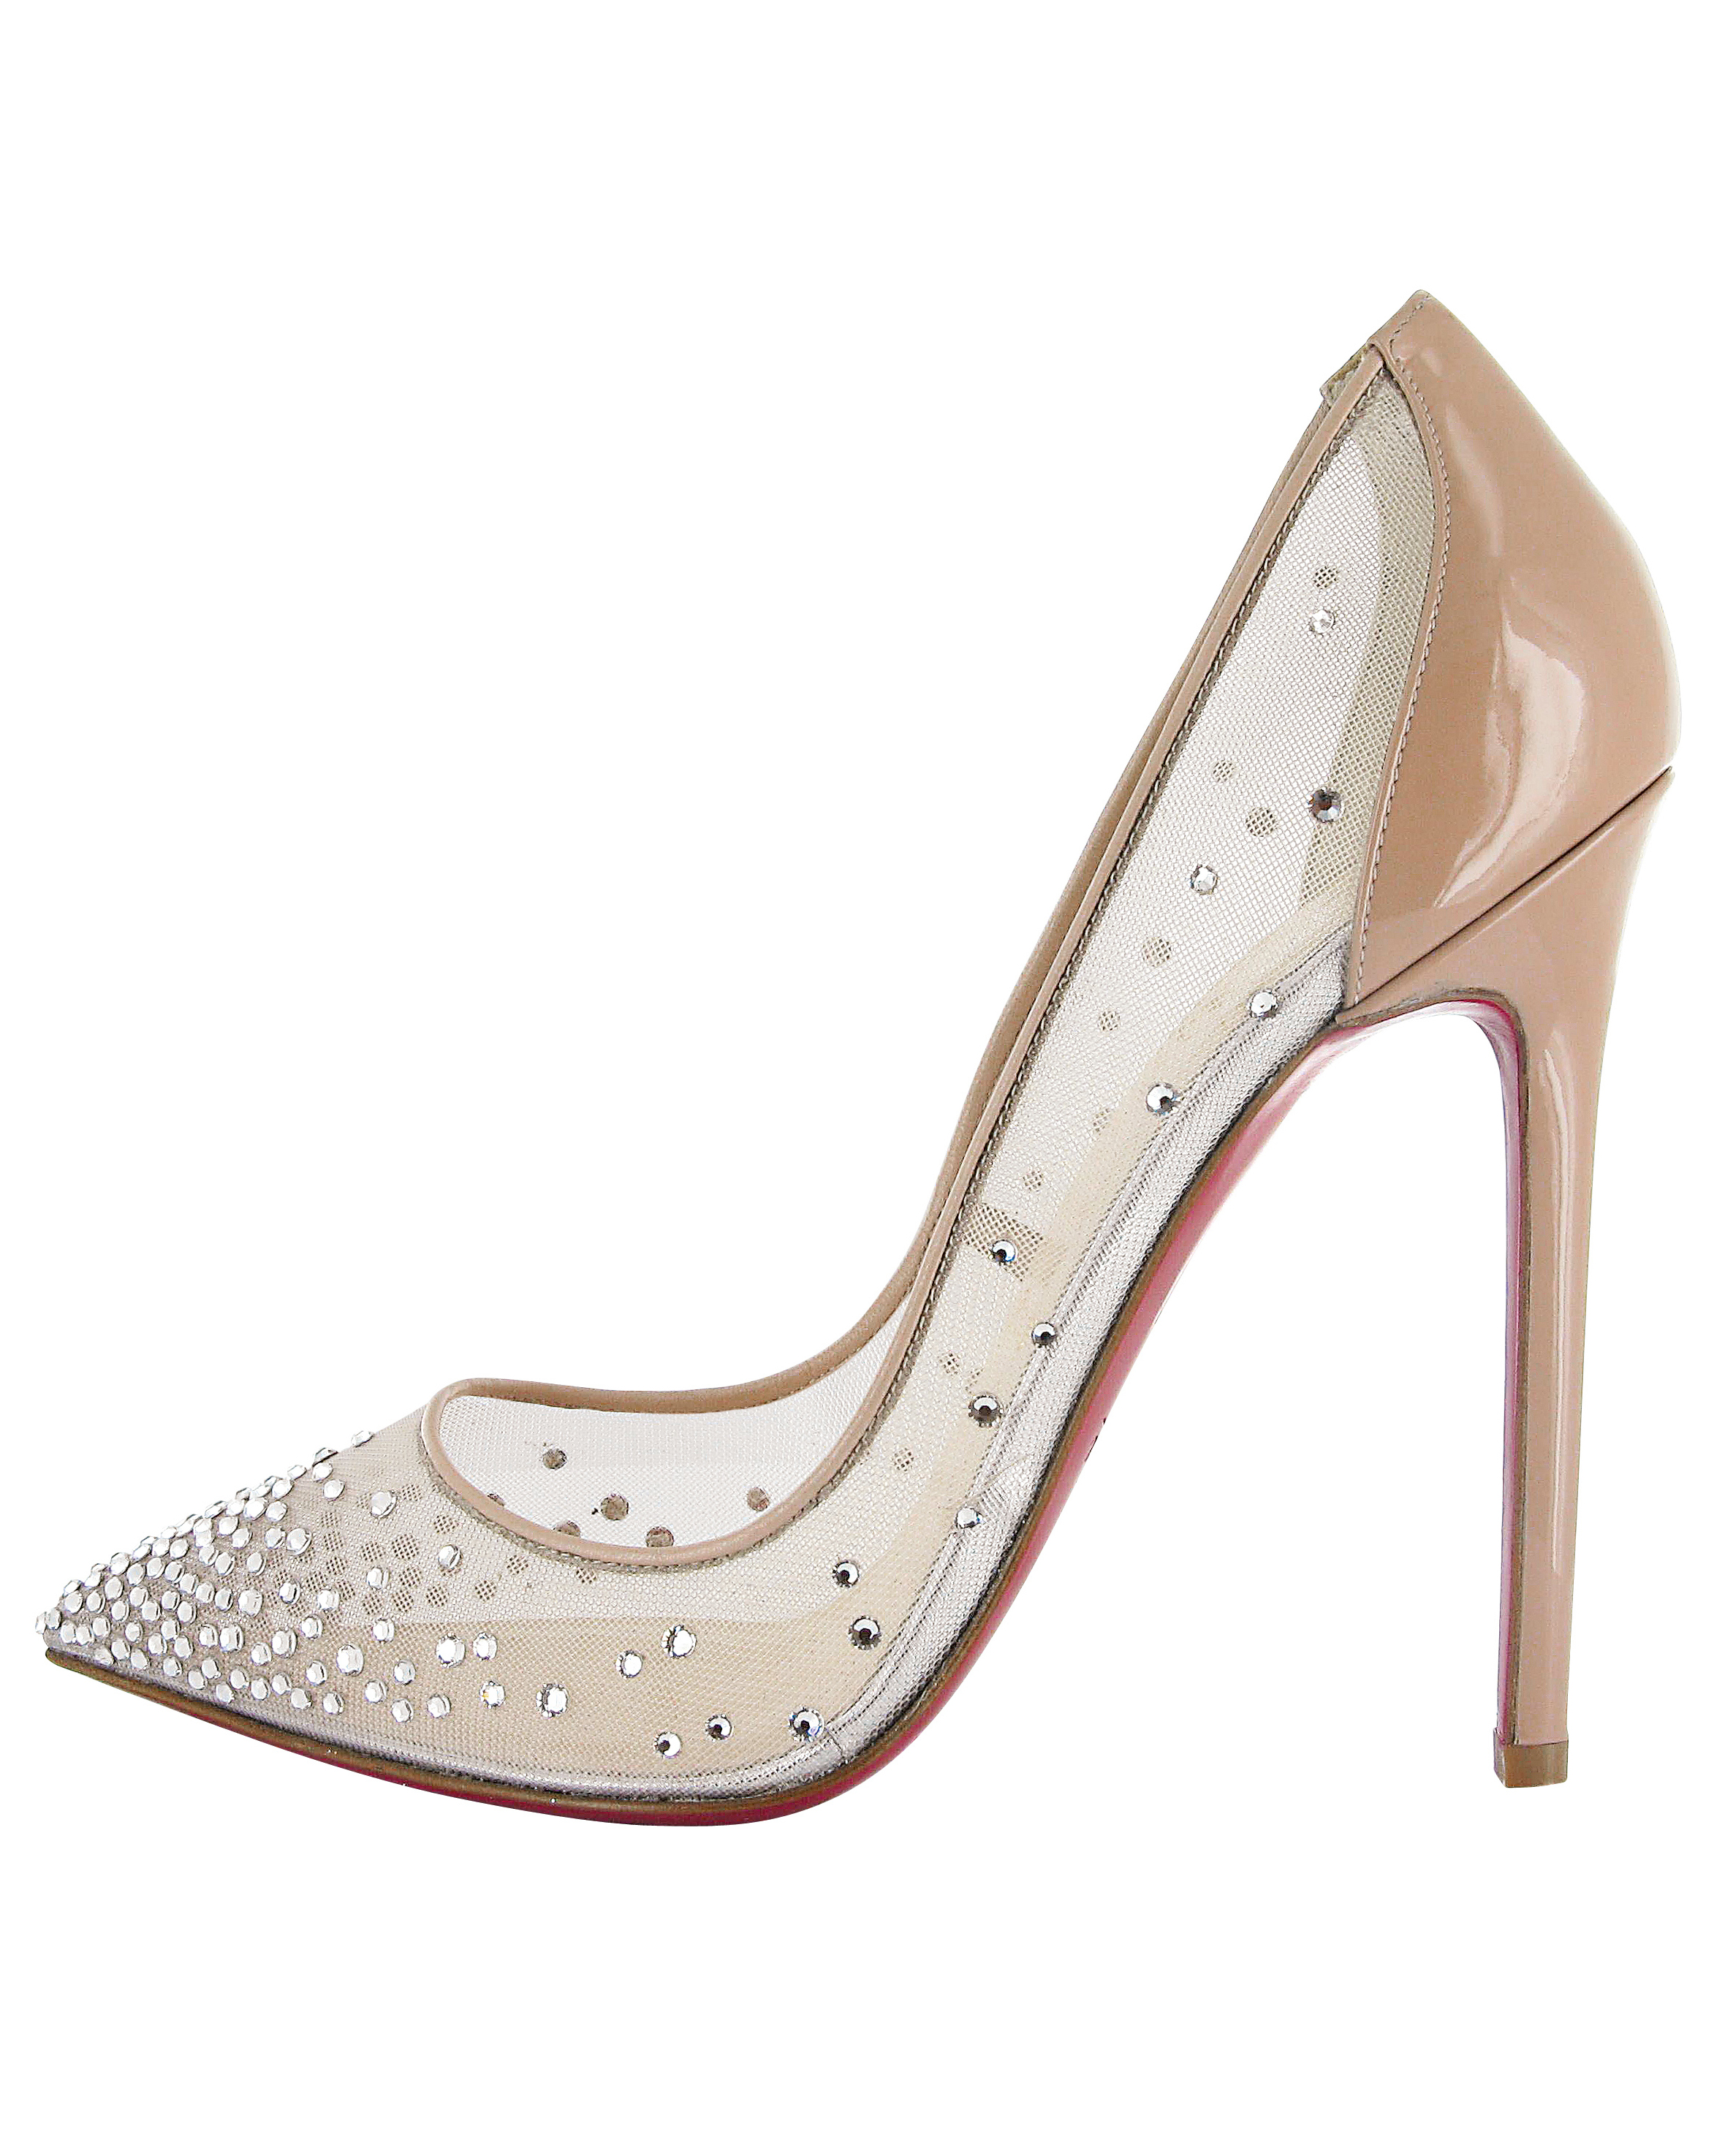 christian-louboutin-body-strass-120-patent-heel-nude-shoes-msw-fall13.jpg